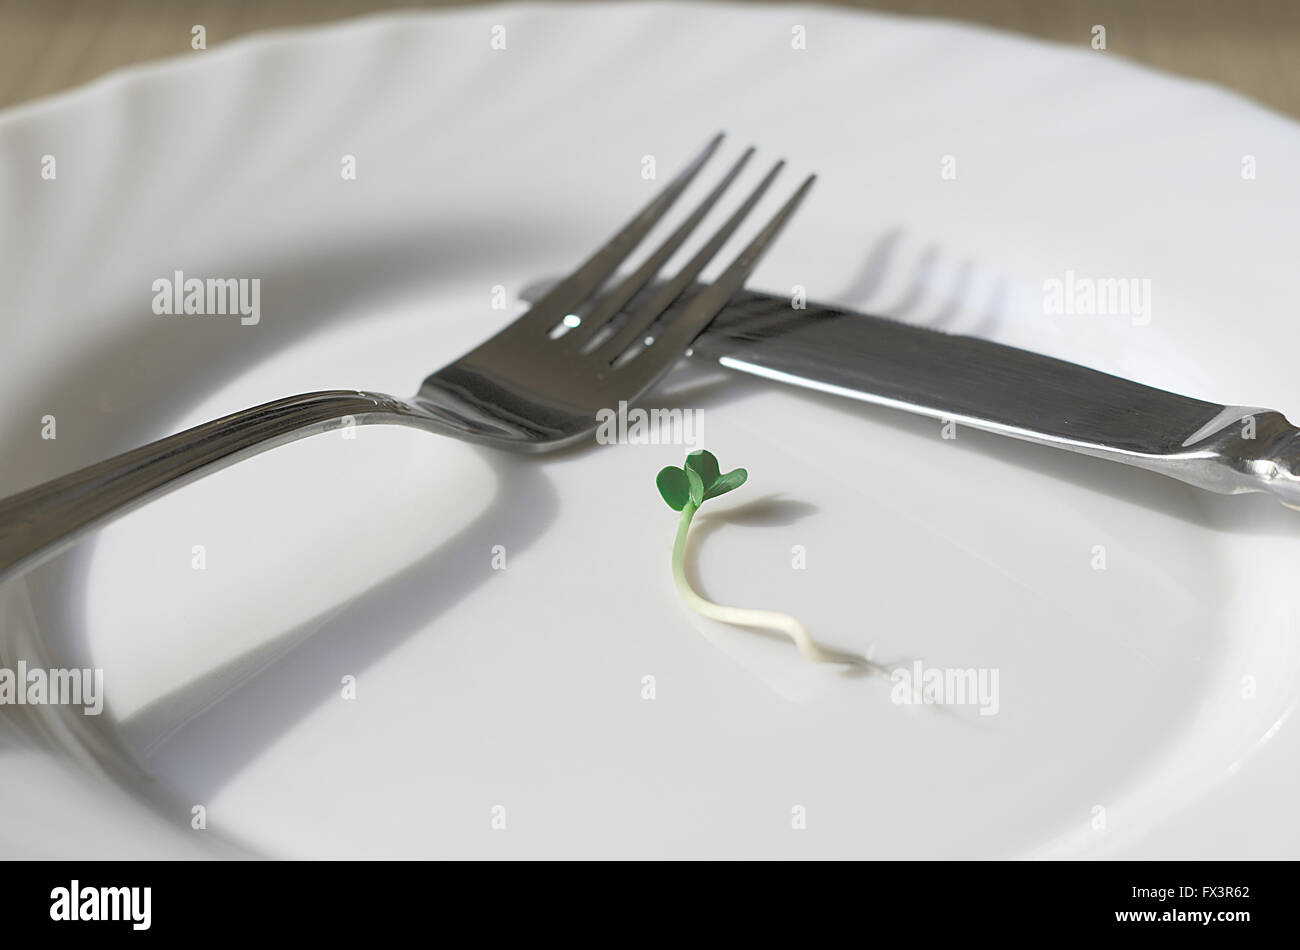 Lonely green sprout on a dish - Stock Image